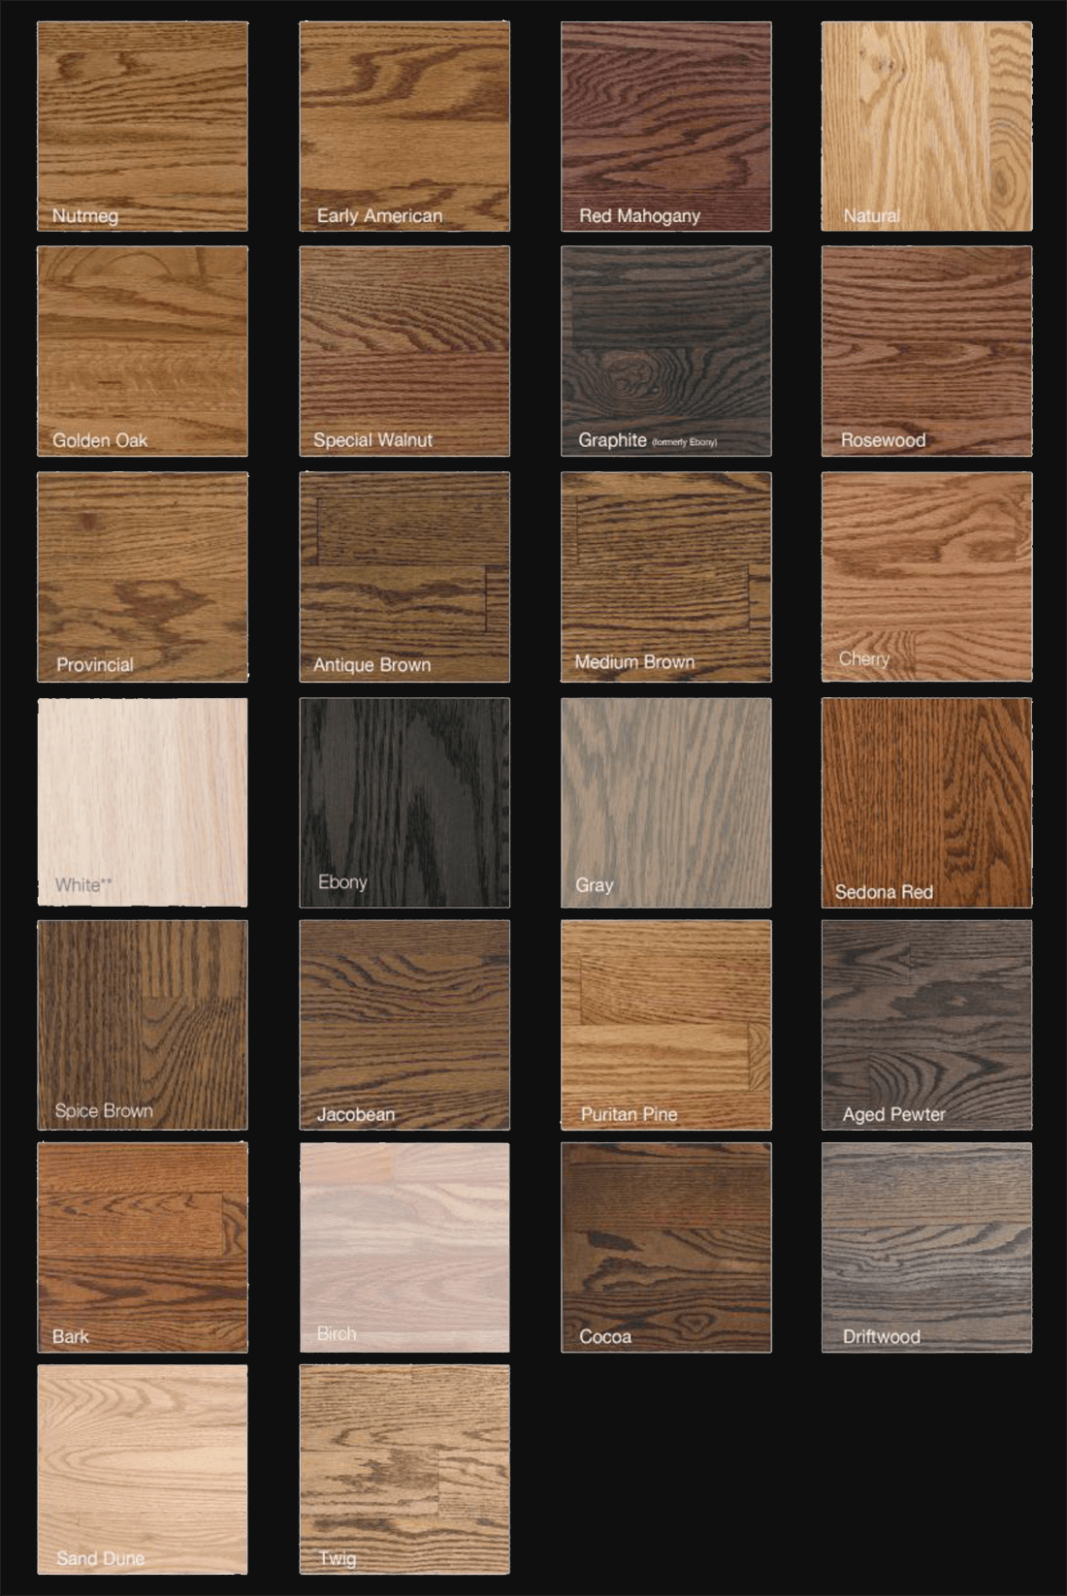 Wakefield Hardwood Floors